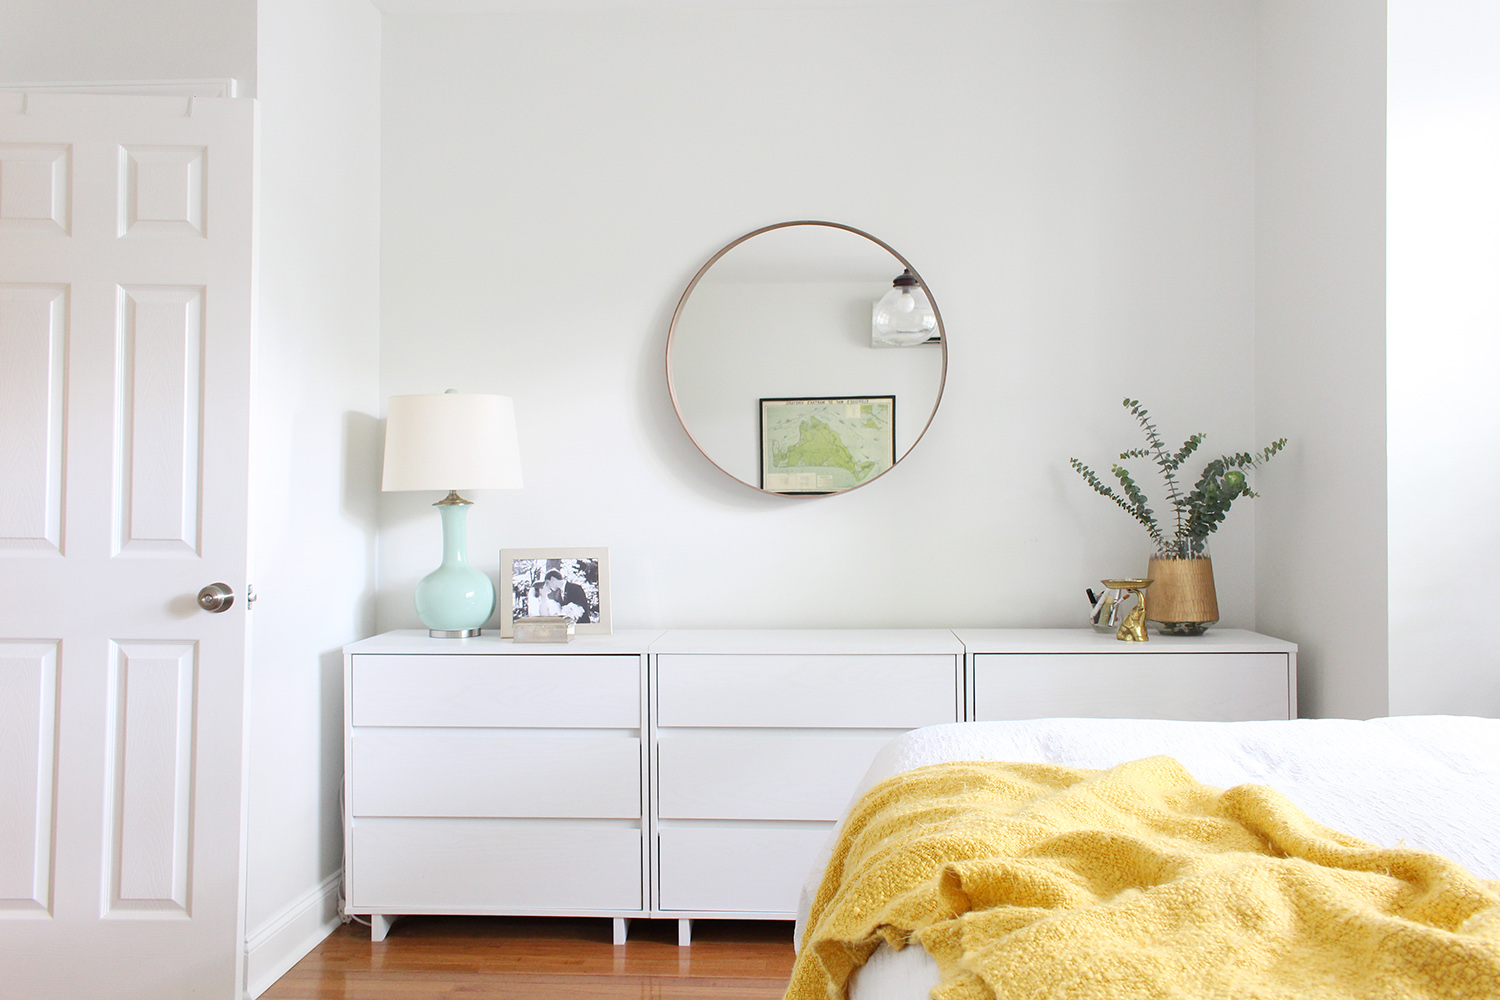 A row of three budget-friendly, modern dressers from Target fill this bedroom nook perfectly.